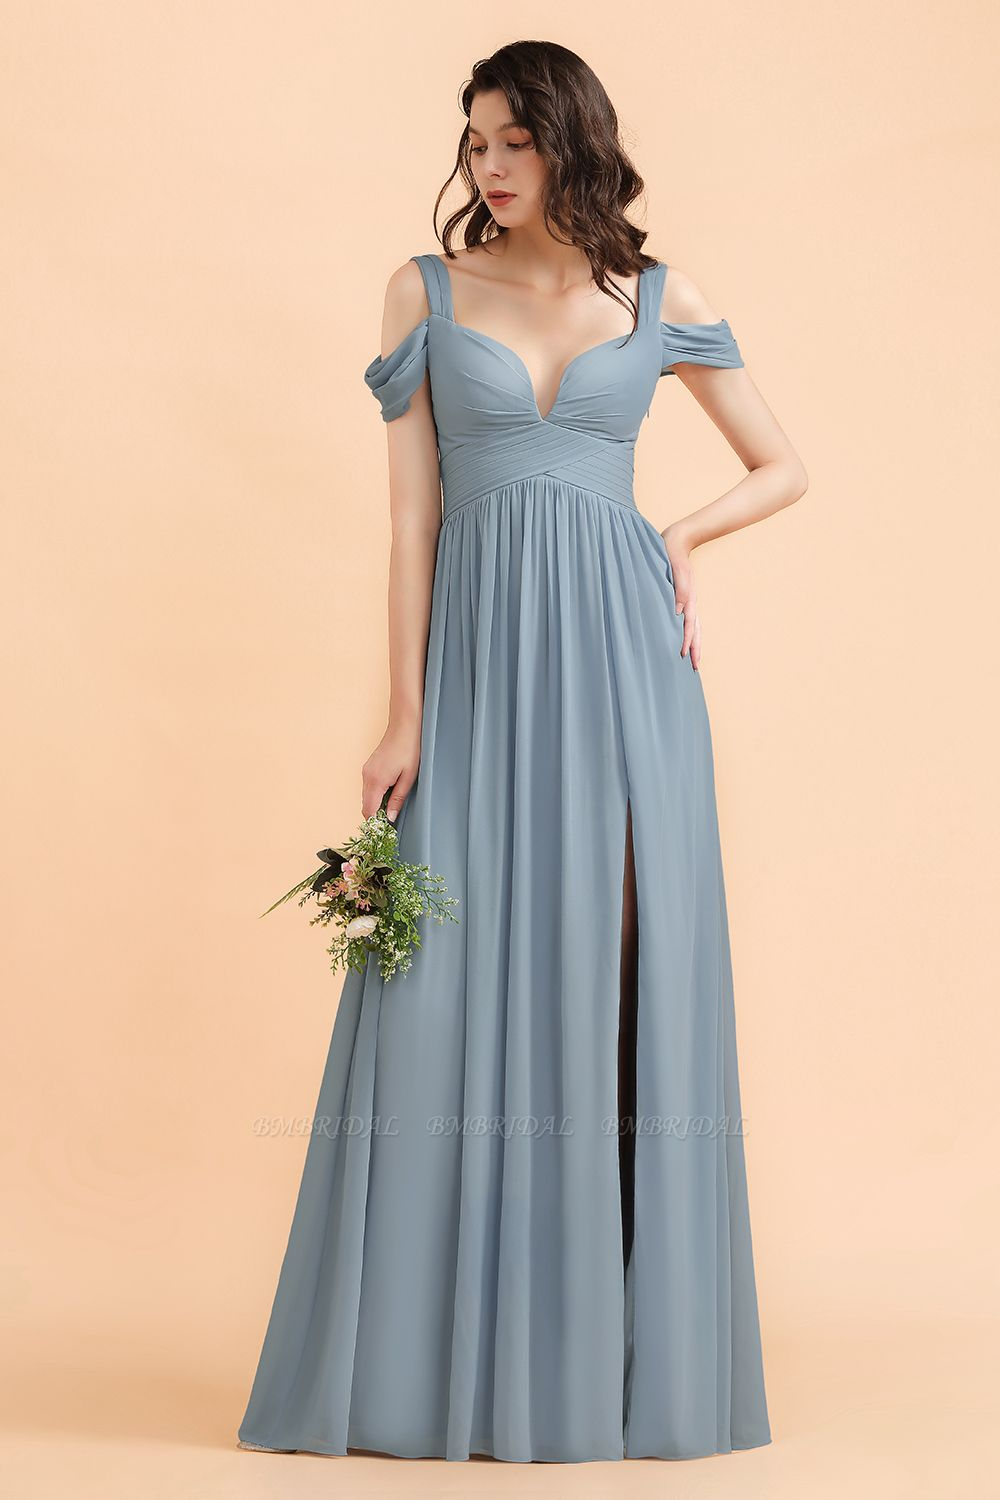 BMbridal Sexy Cold-Shoulder Dusty Blue Chiffon Bridesmaid Dress with Slit On Sale